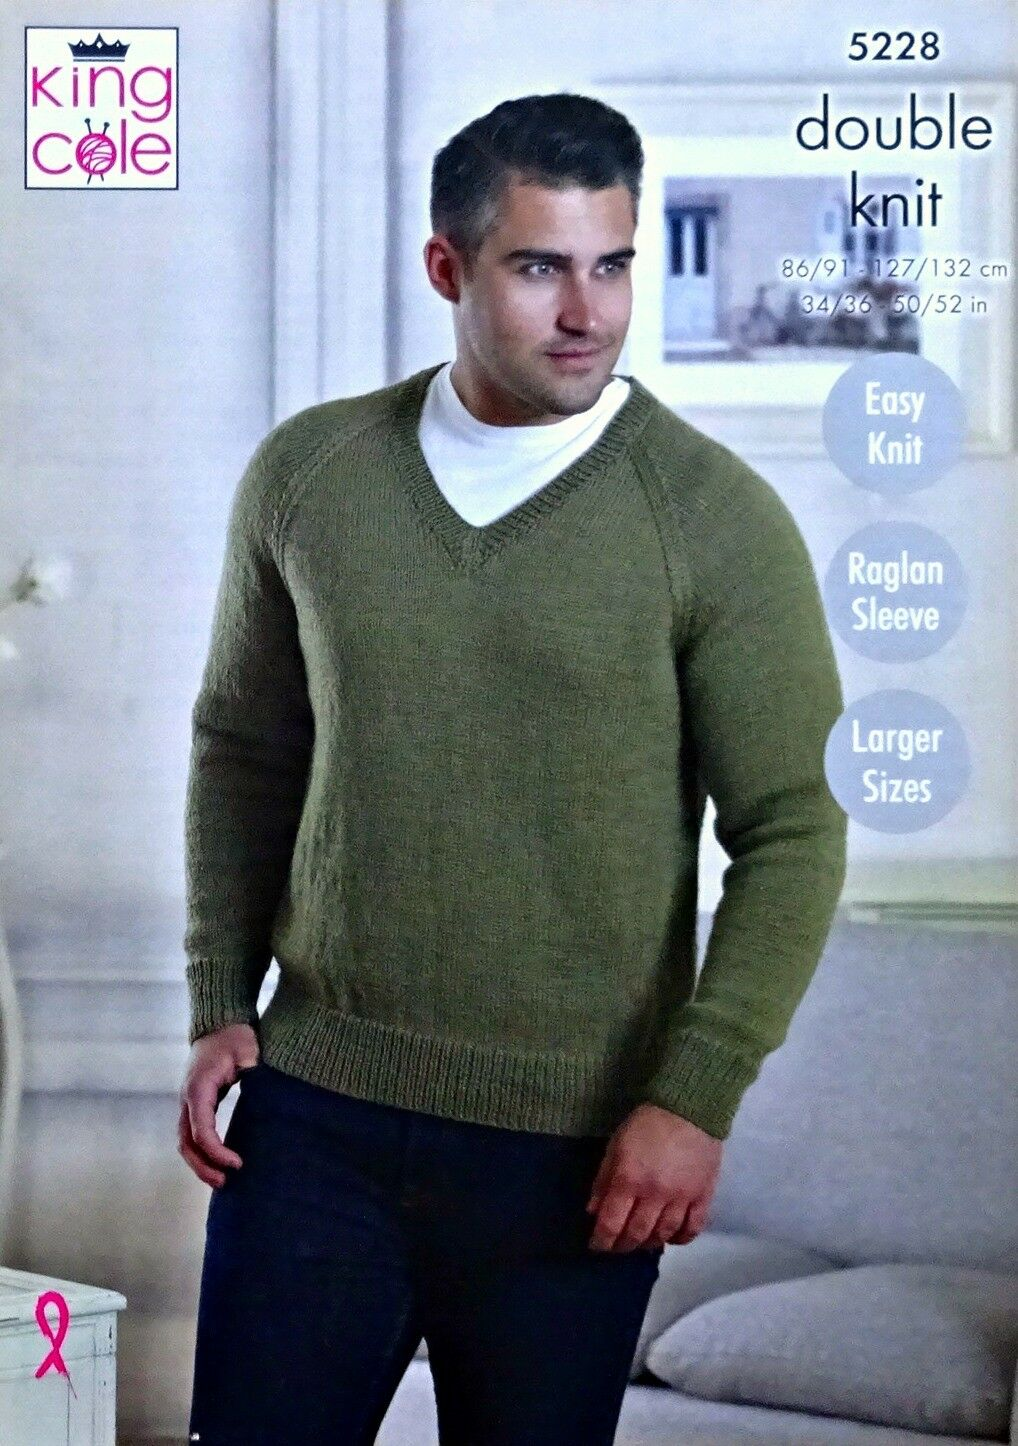 5091af3d6791a Knitting Pattern Mens Easy Knit Round or V-neck Jumper DK King Cole ...